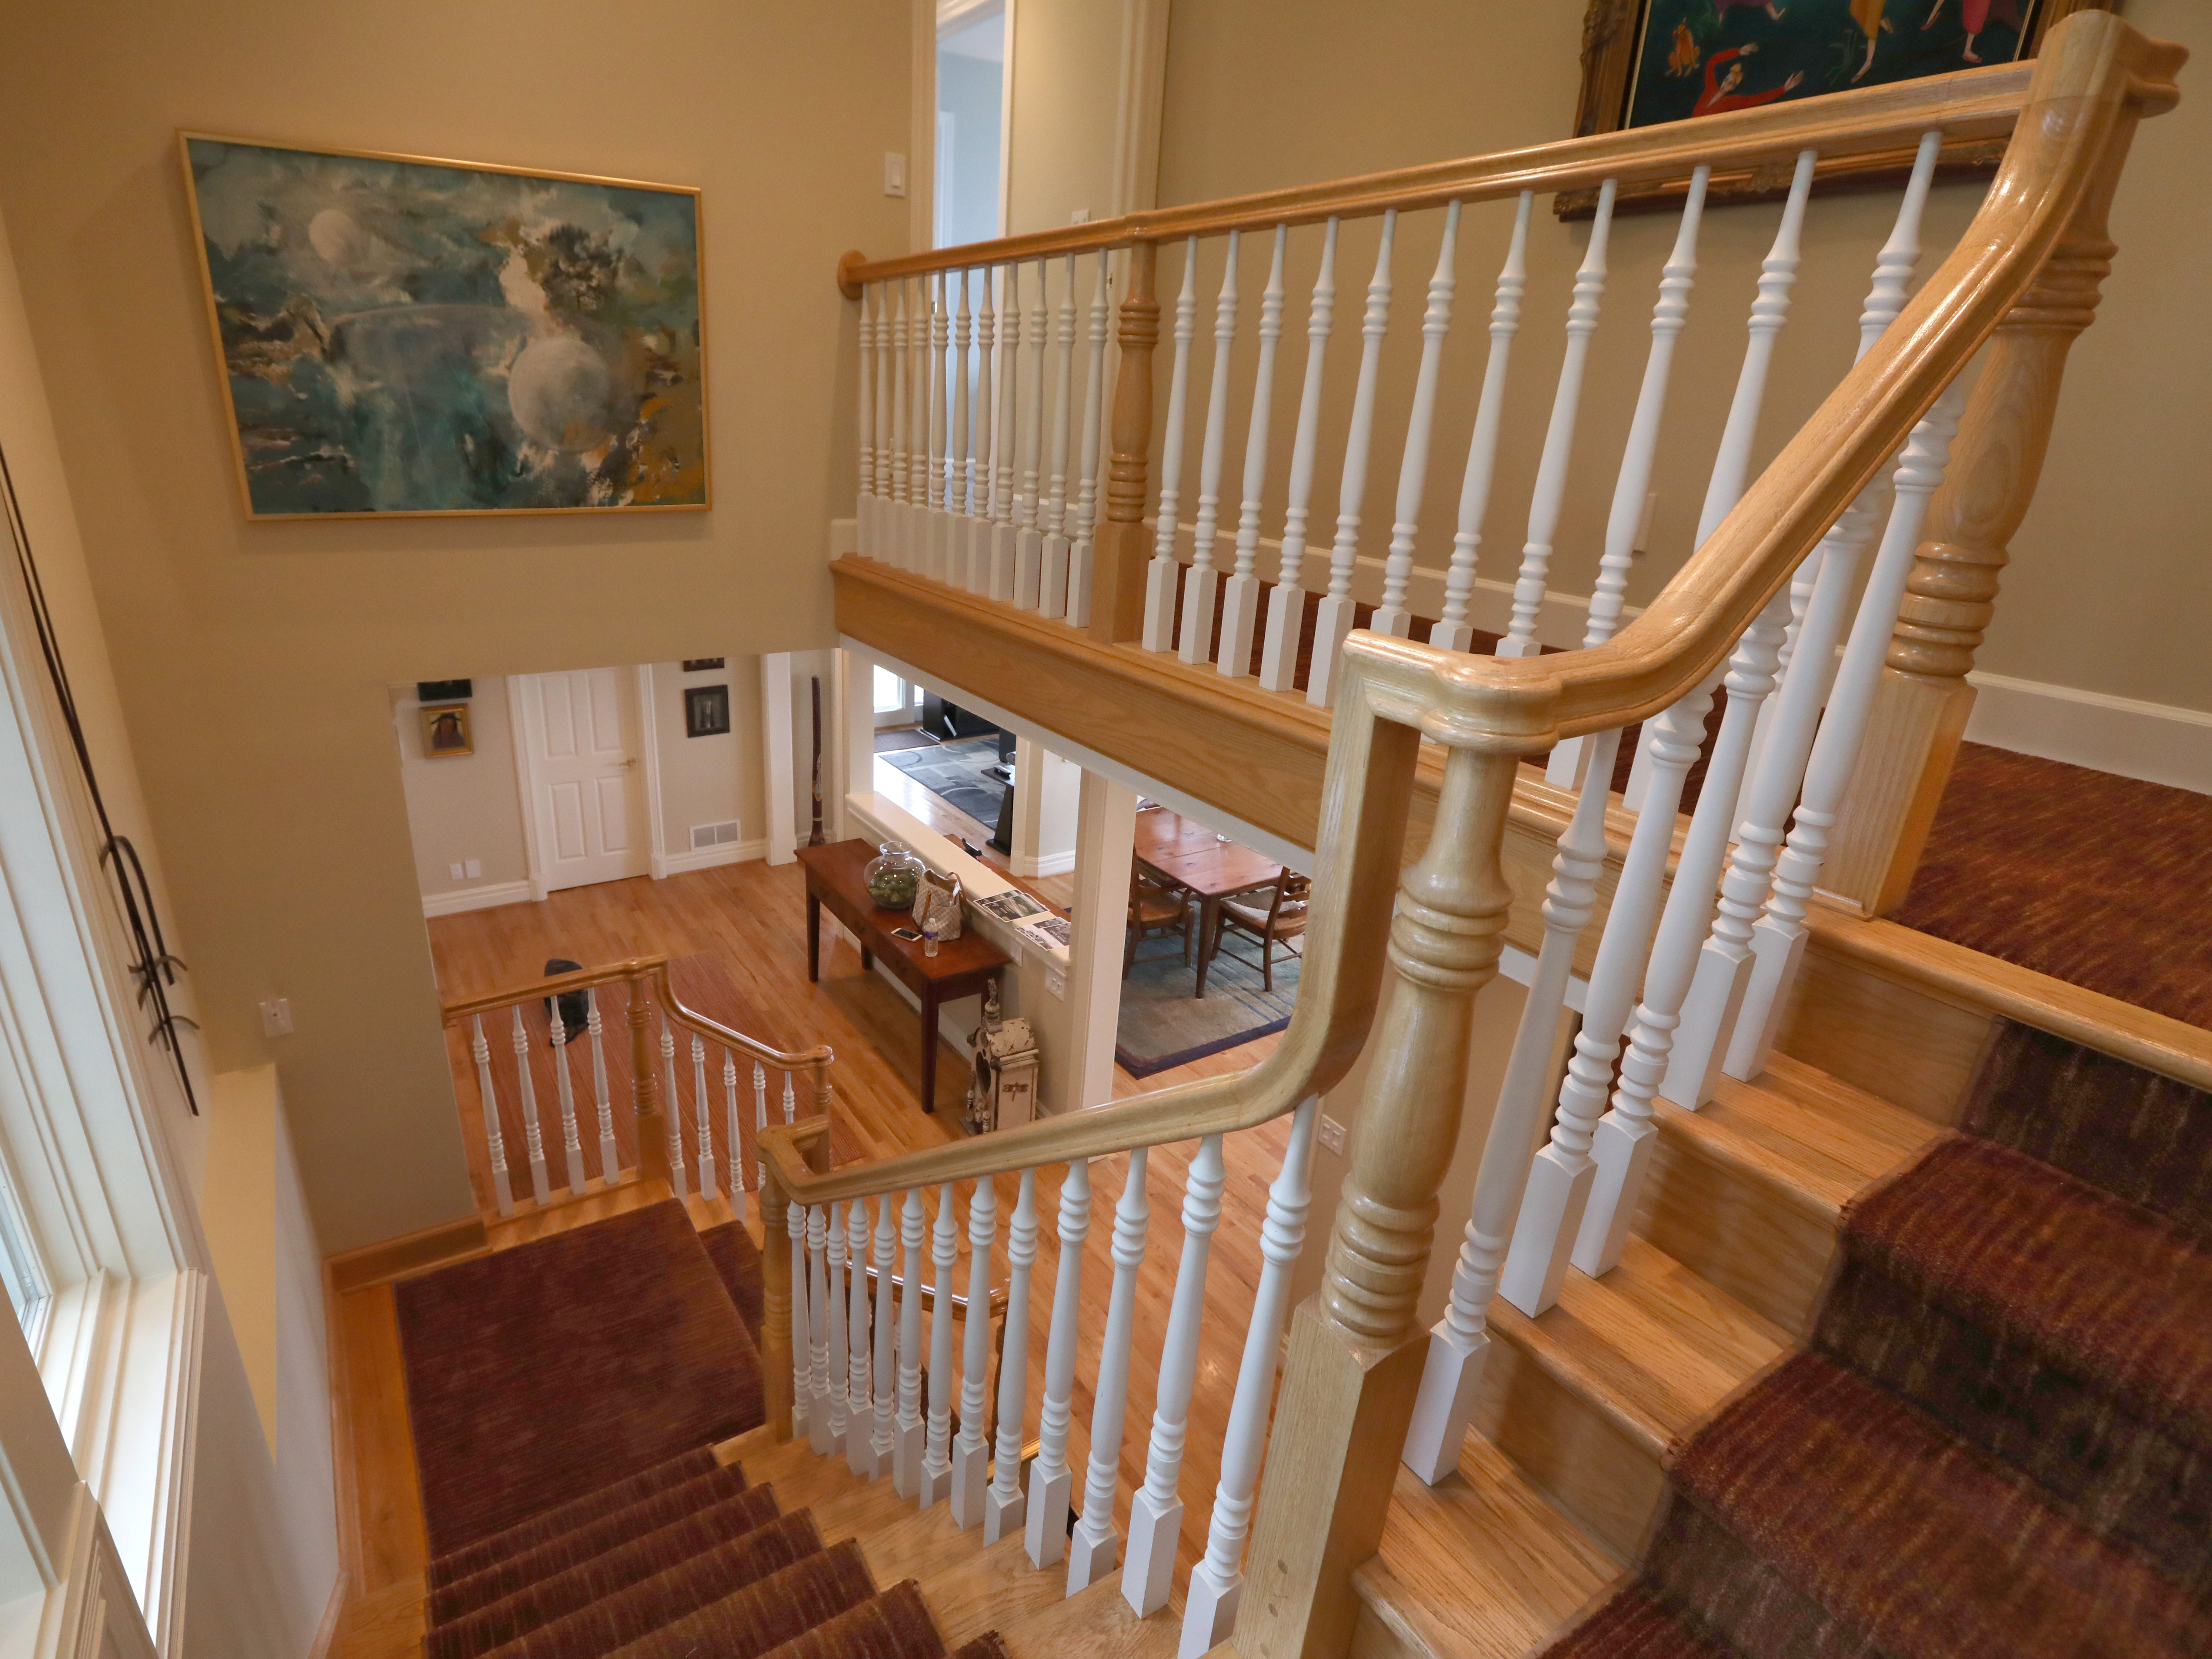 The carpeted stairs leading to the second floor.